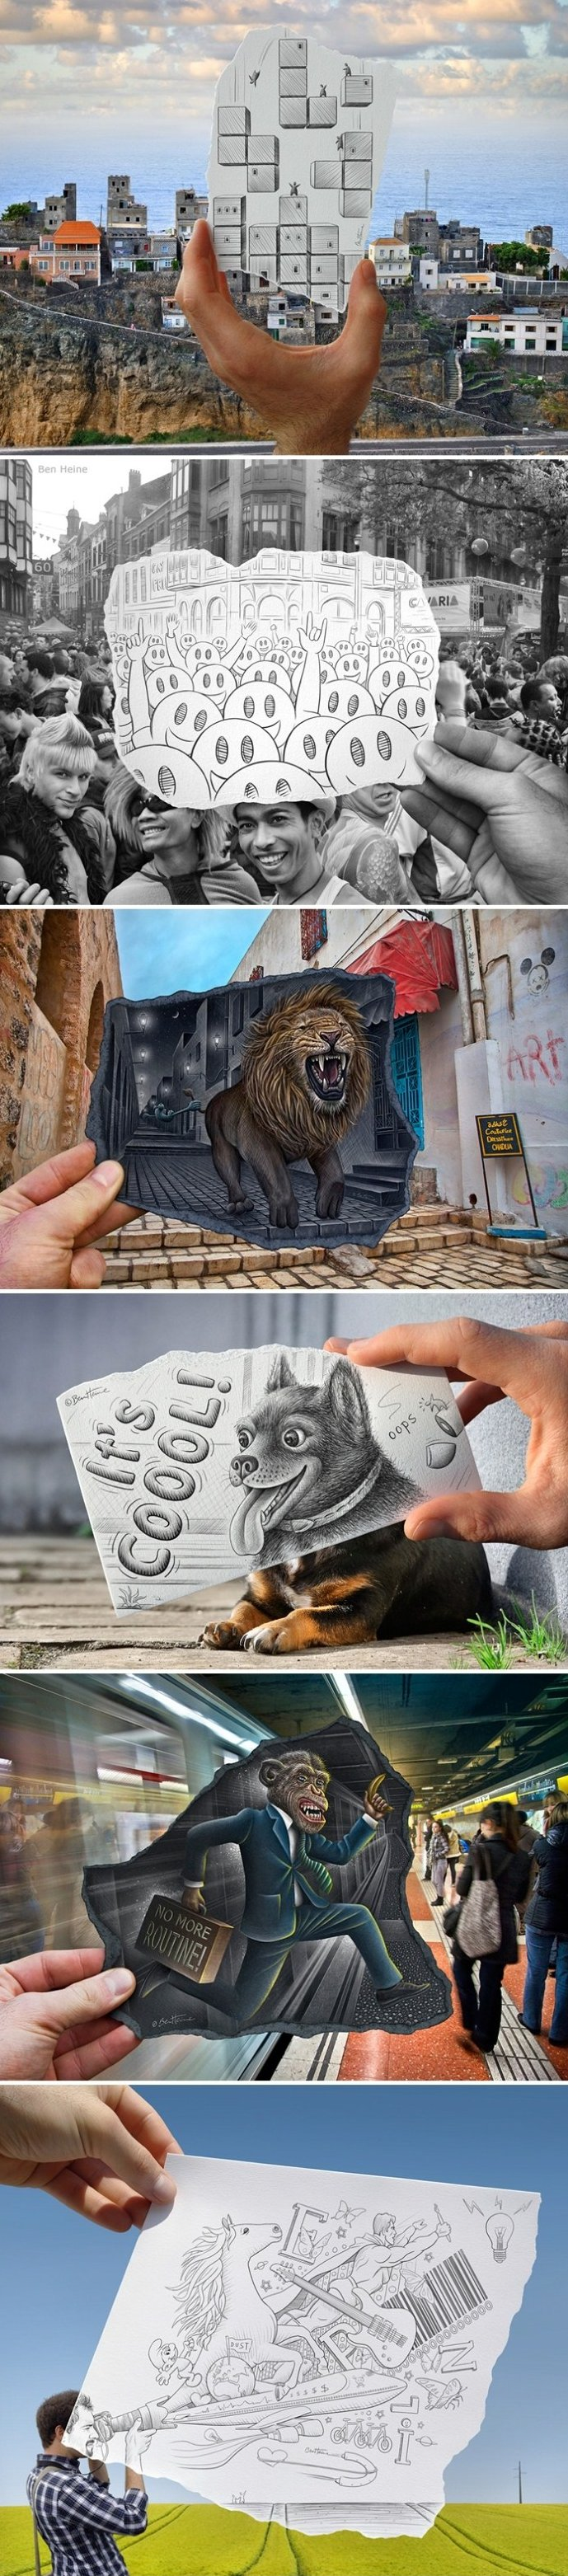 Awesome Blending of Drawings and Photos